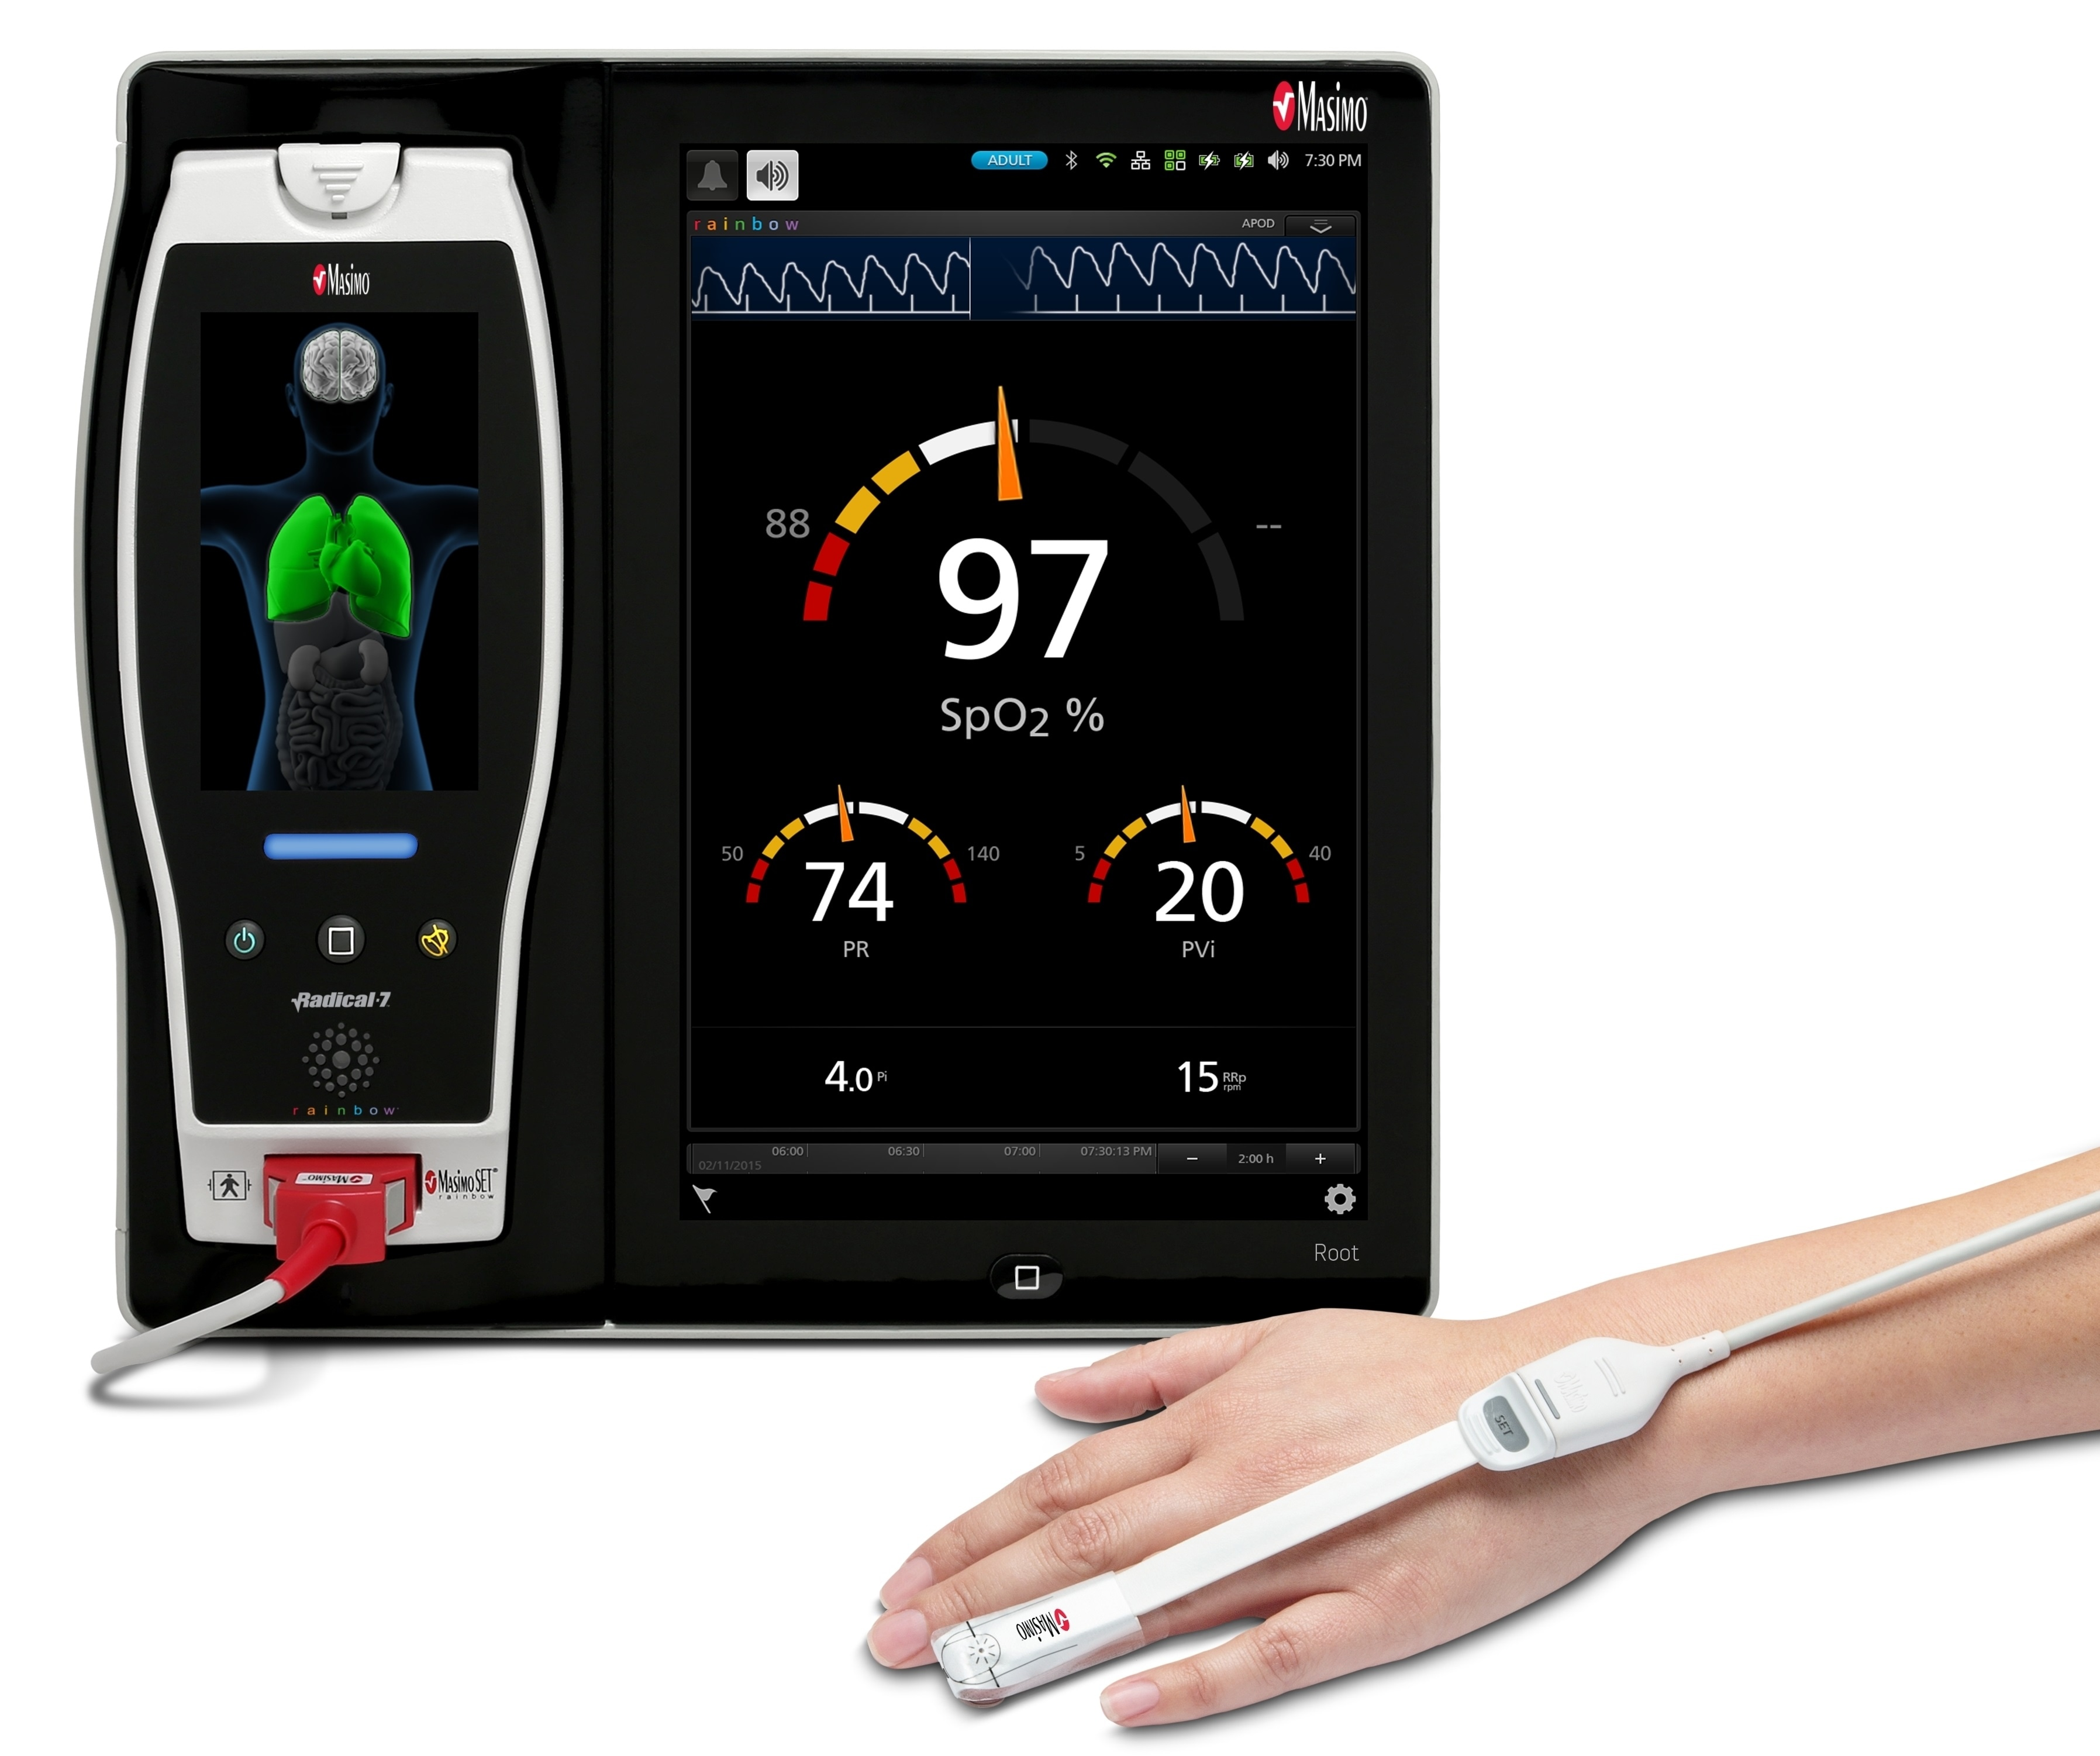 Masimo PVi may provide useful information for monitoring the volume status in spontaneously breathing hemodialysis patients